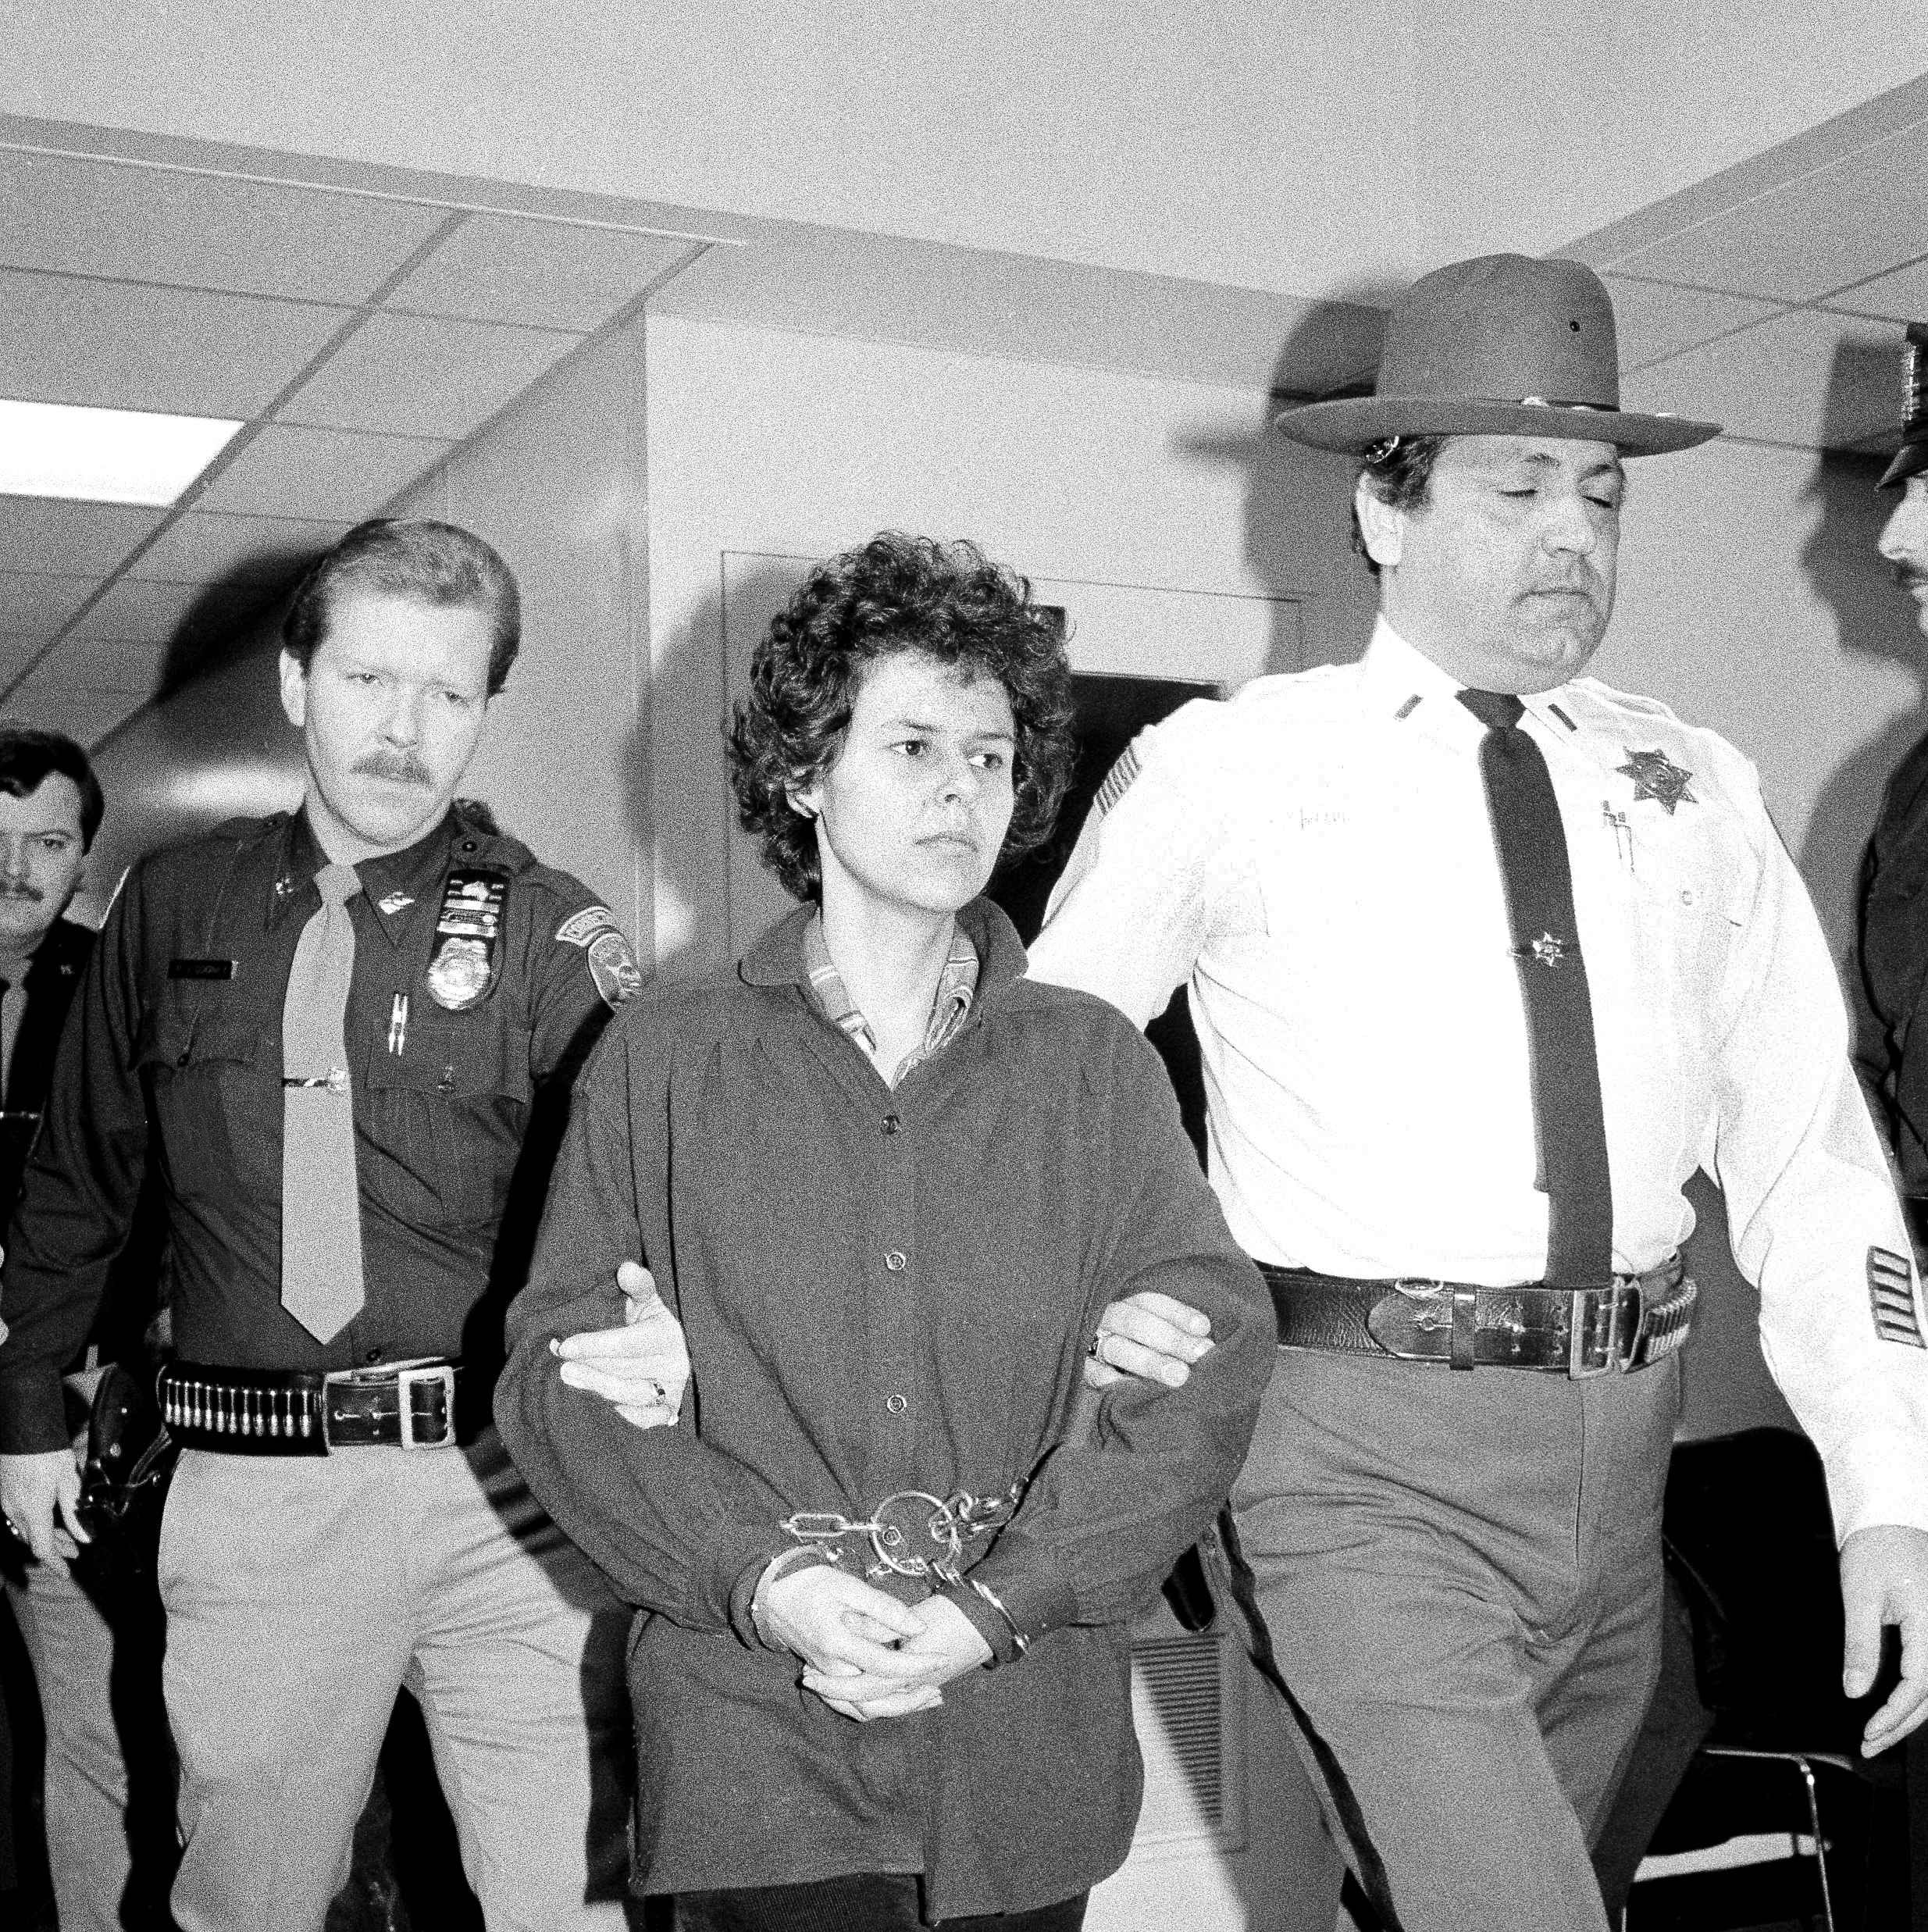 Brinks robbery: Read the Judith Clark parole decision